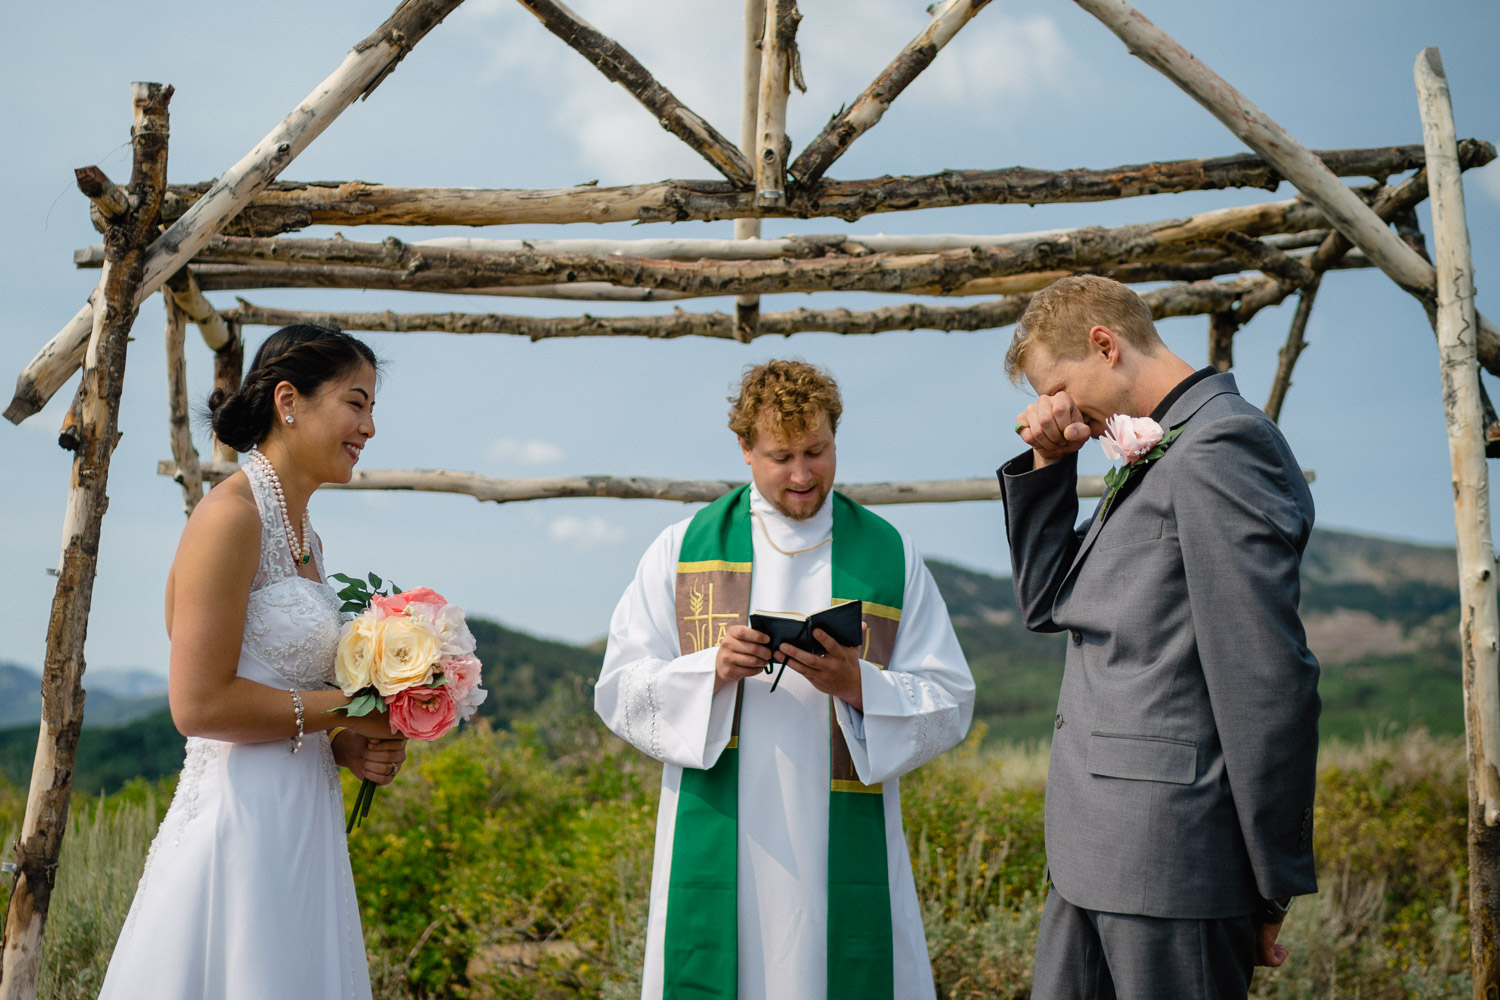 bride groom and officiant at outdoor altar groom wiping eyes